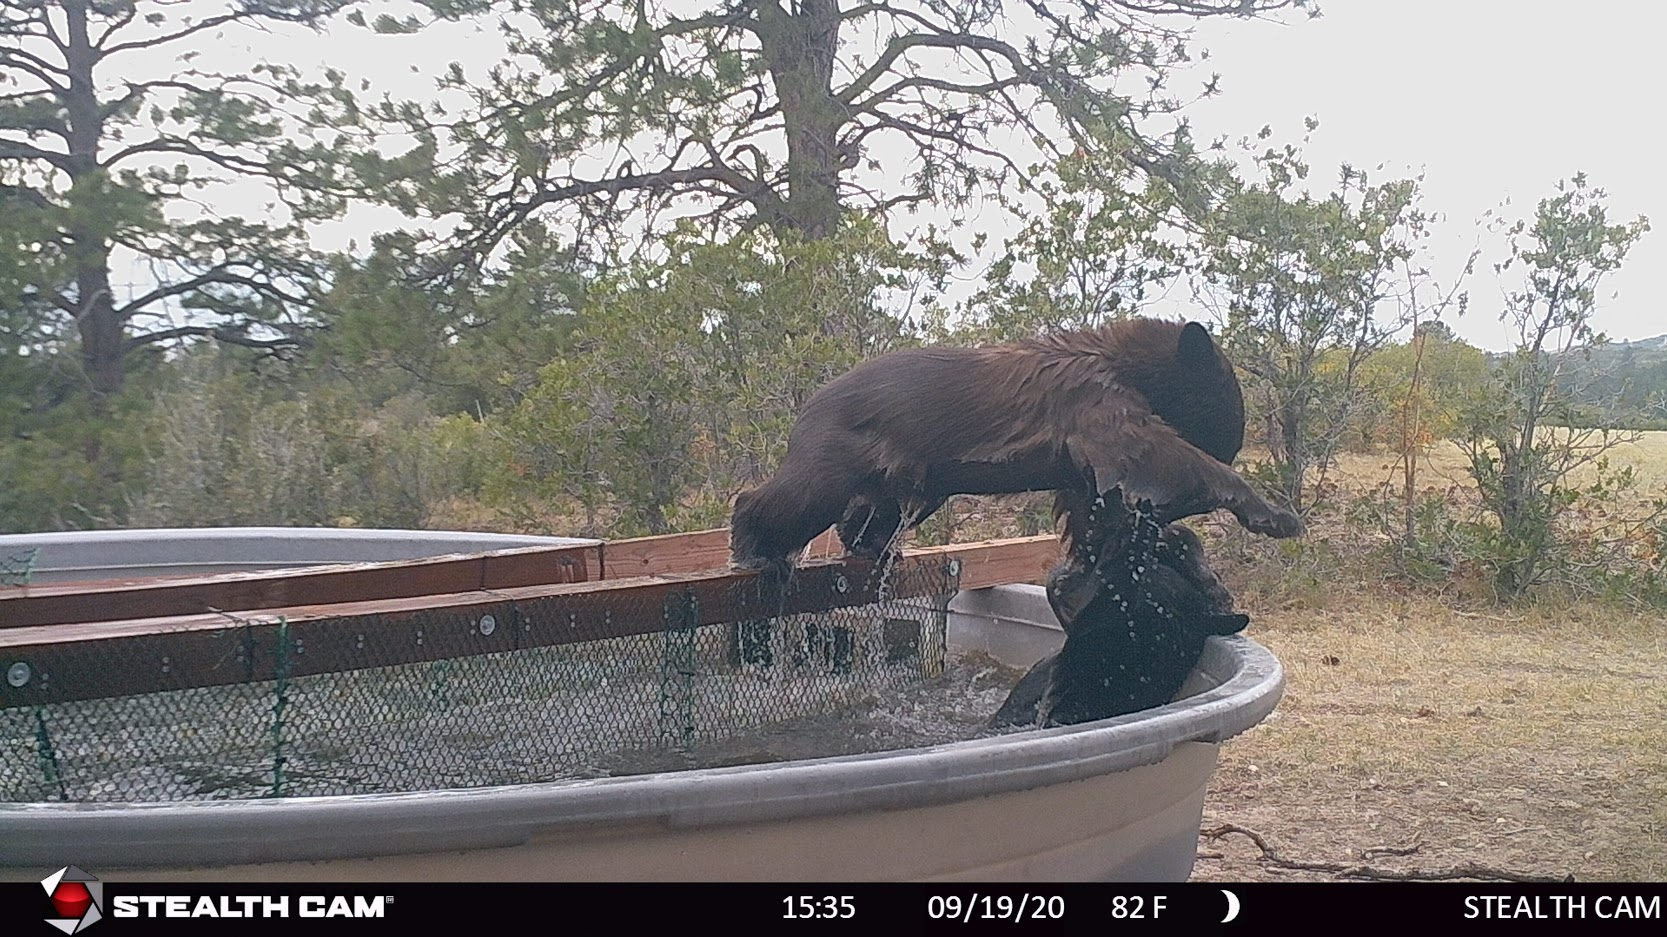 bear lifting other bear in water tank